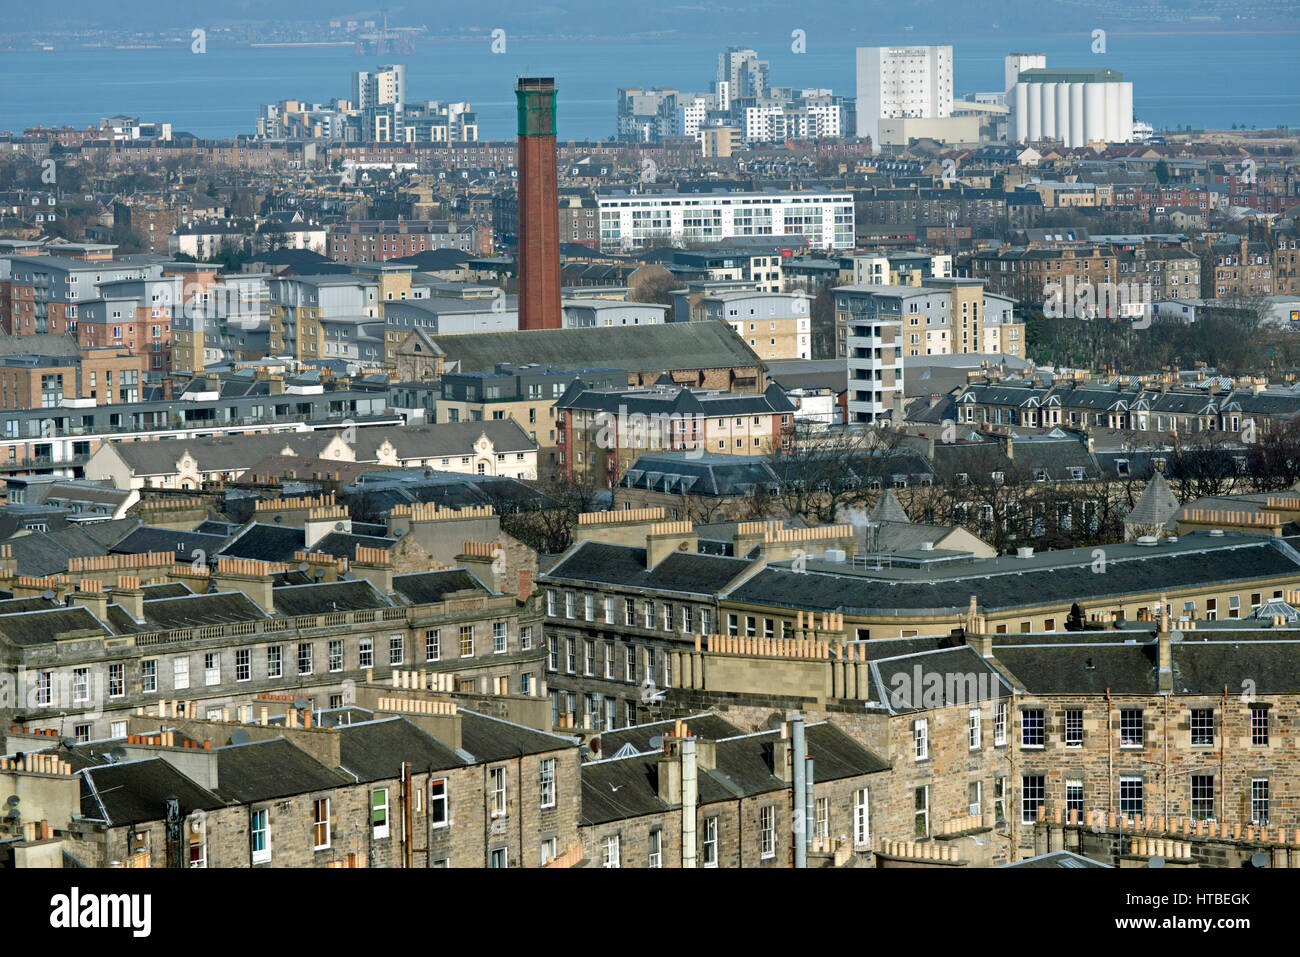 The view from Calton Hill in Edinburgh looking North towards Leith. - Stock Image